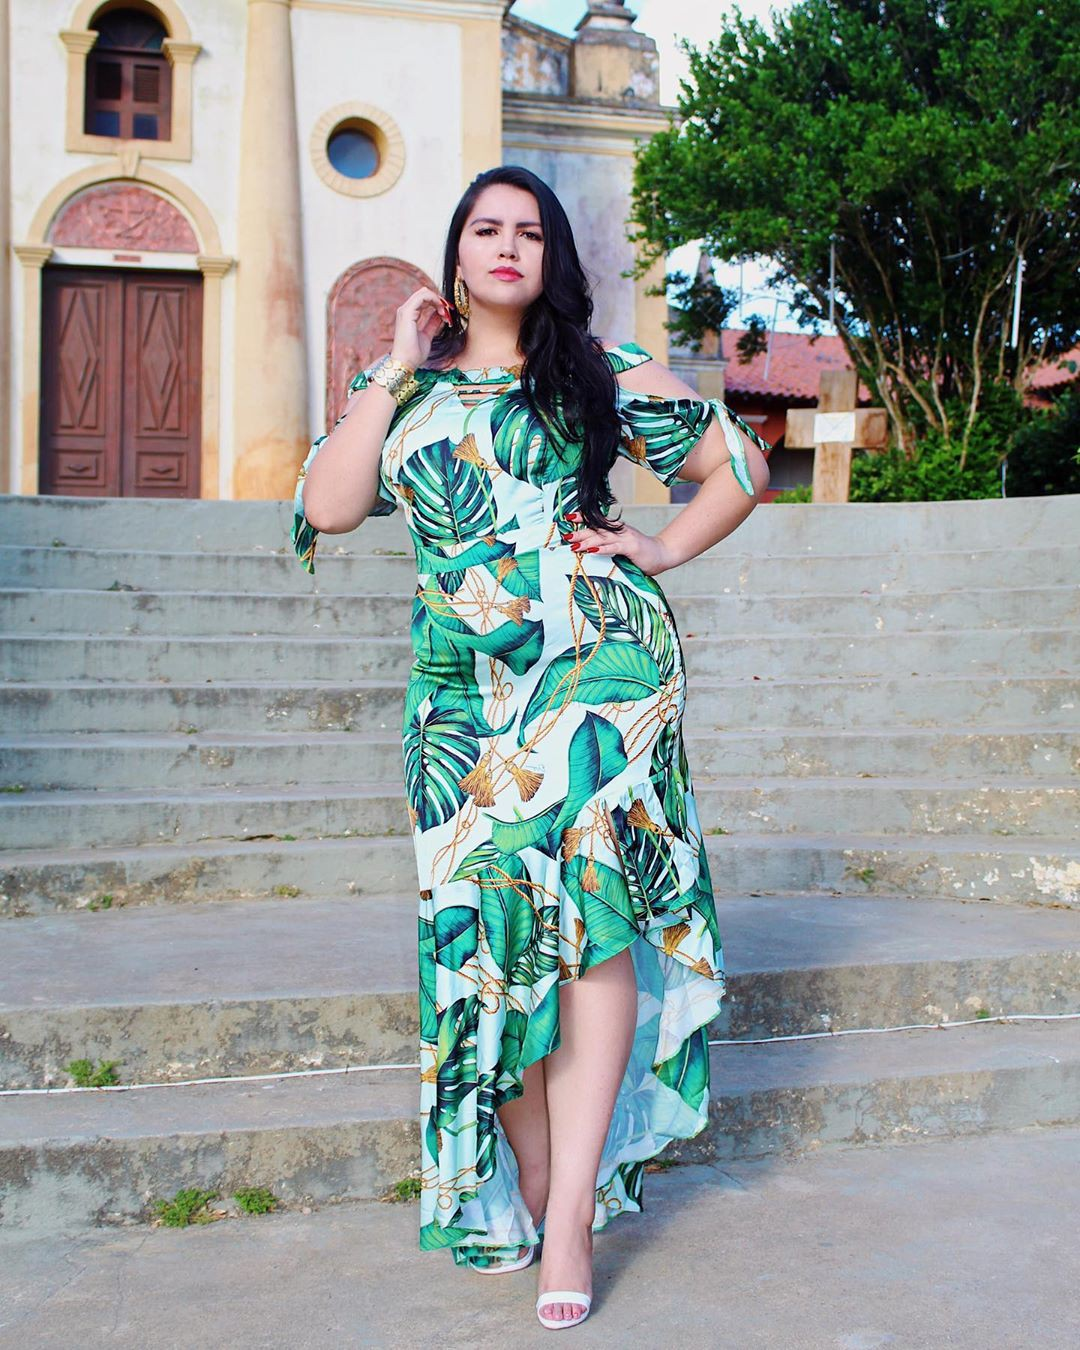 Turquoise and green dress, photoshoot ideas, apparel ideas